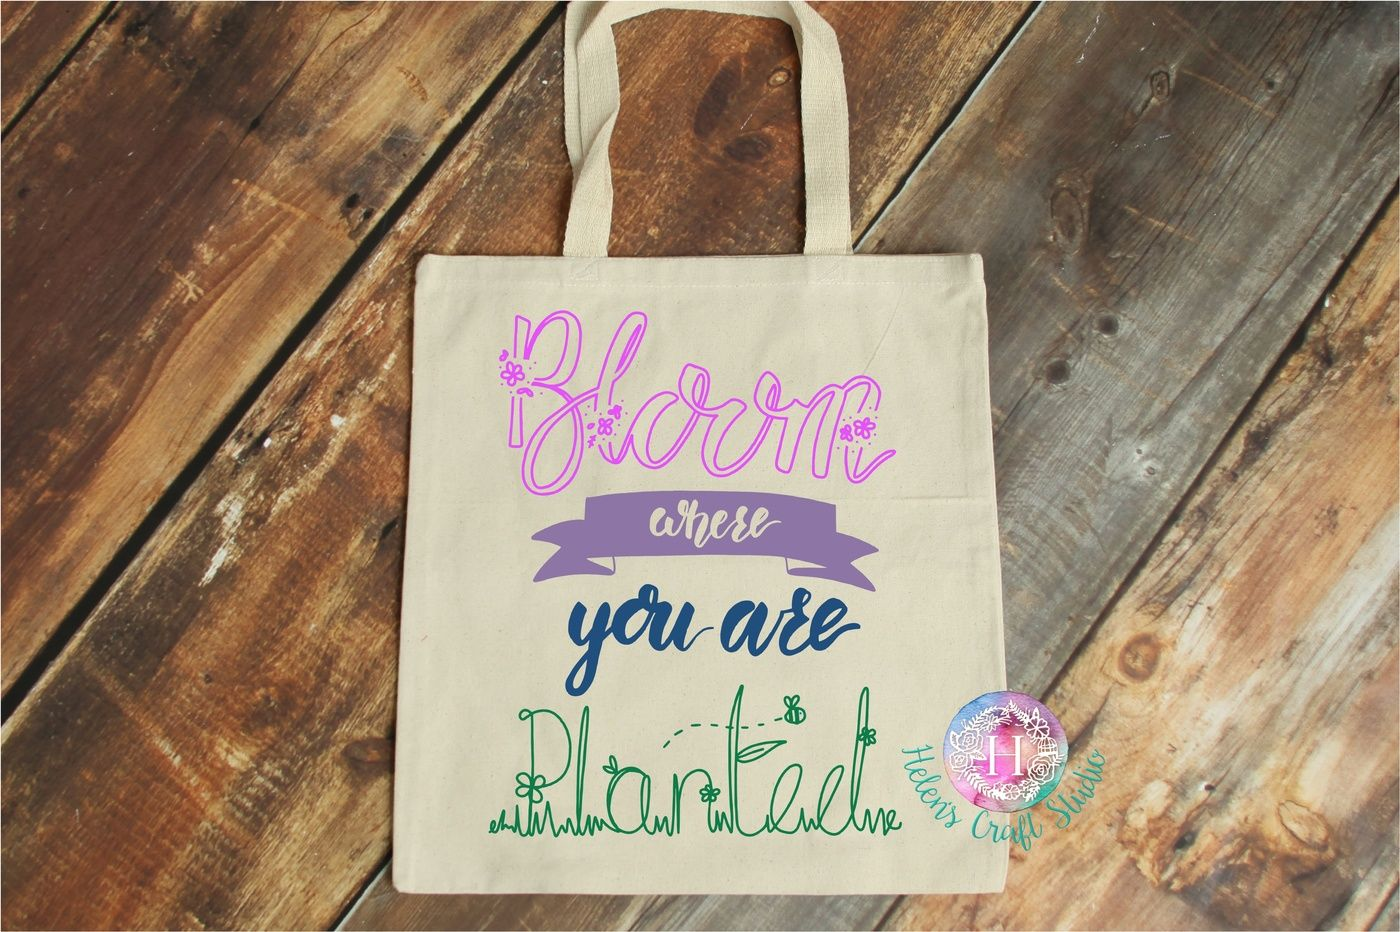 Bloom Where You Are Planted Svg Dxf Png Pdf And Jpeg Cutting File By Helens Craft Studio Thehungryjpeg Com